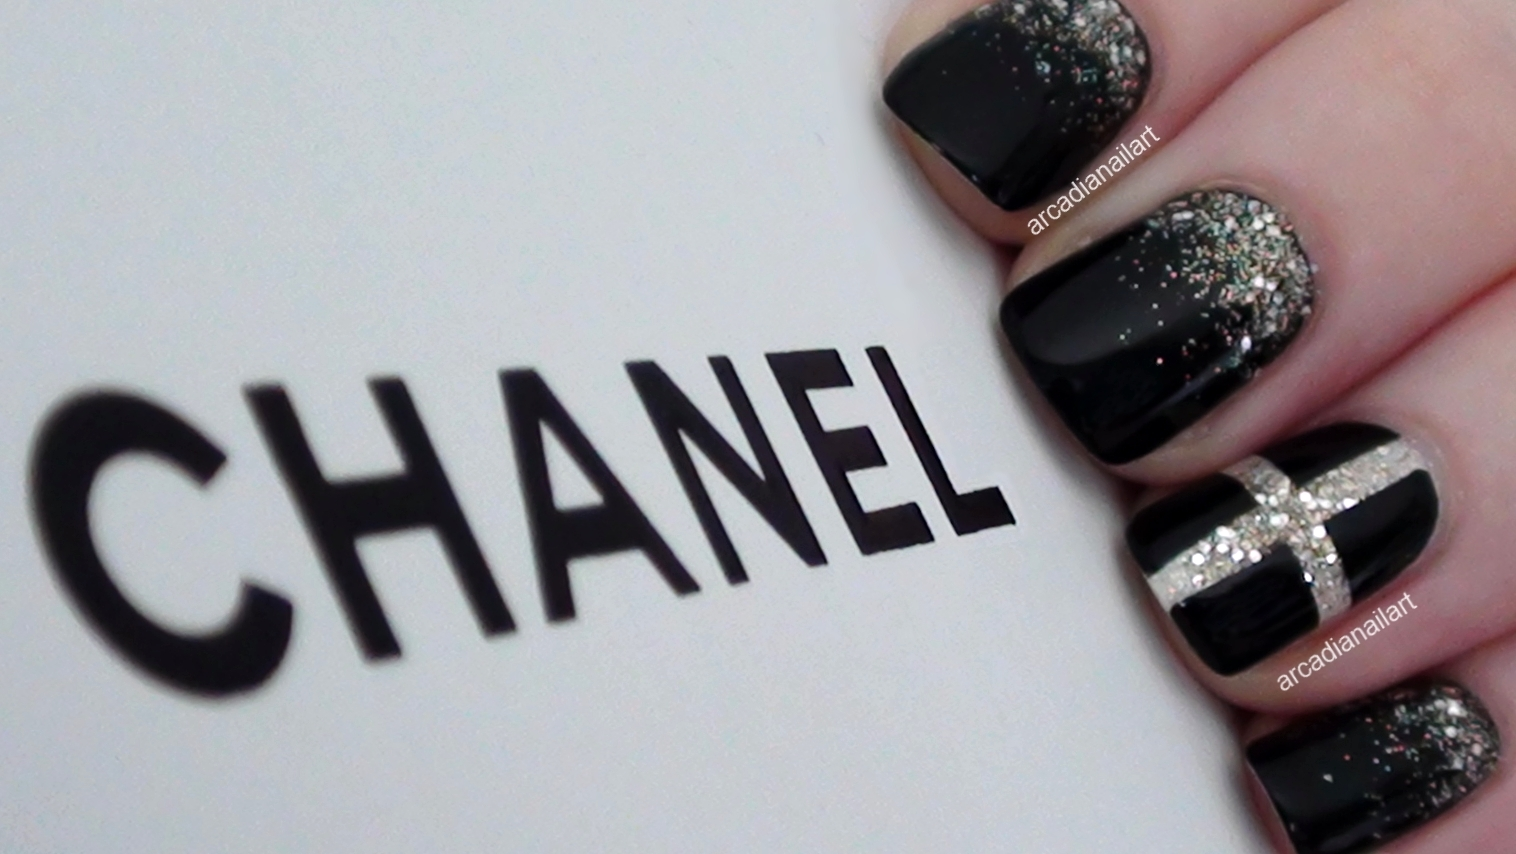 Chic Chanel Inspired Nails - ArcadiaNailArt: Chic Chanel Inspired Nails